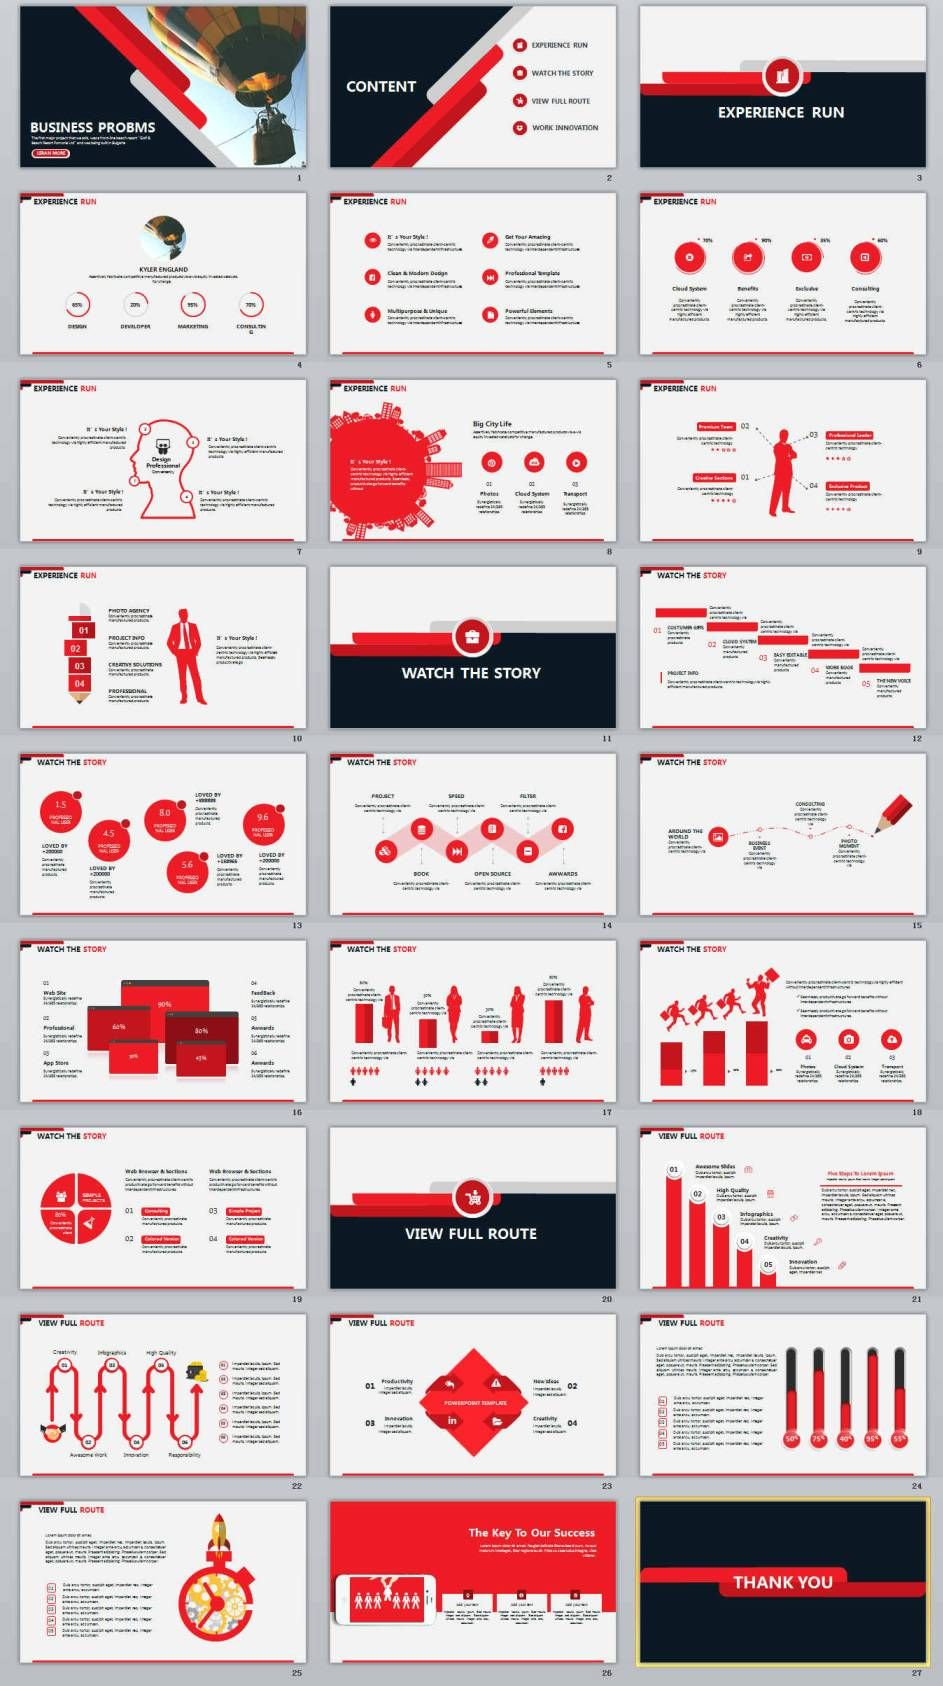 27 Red Business Report Professional Powerpoint Template 2019 Business Powerpoint Templates